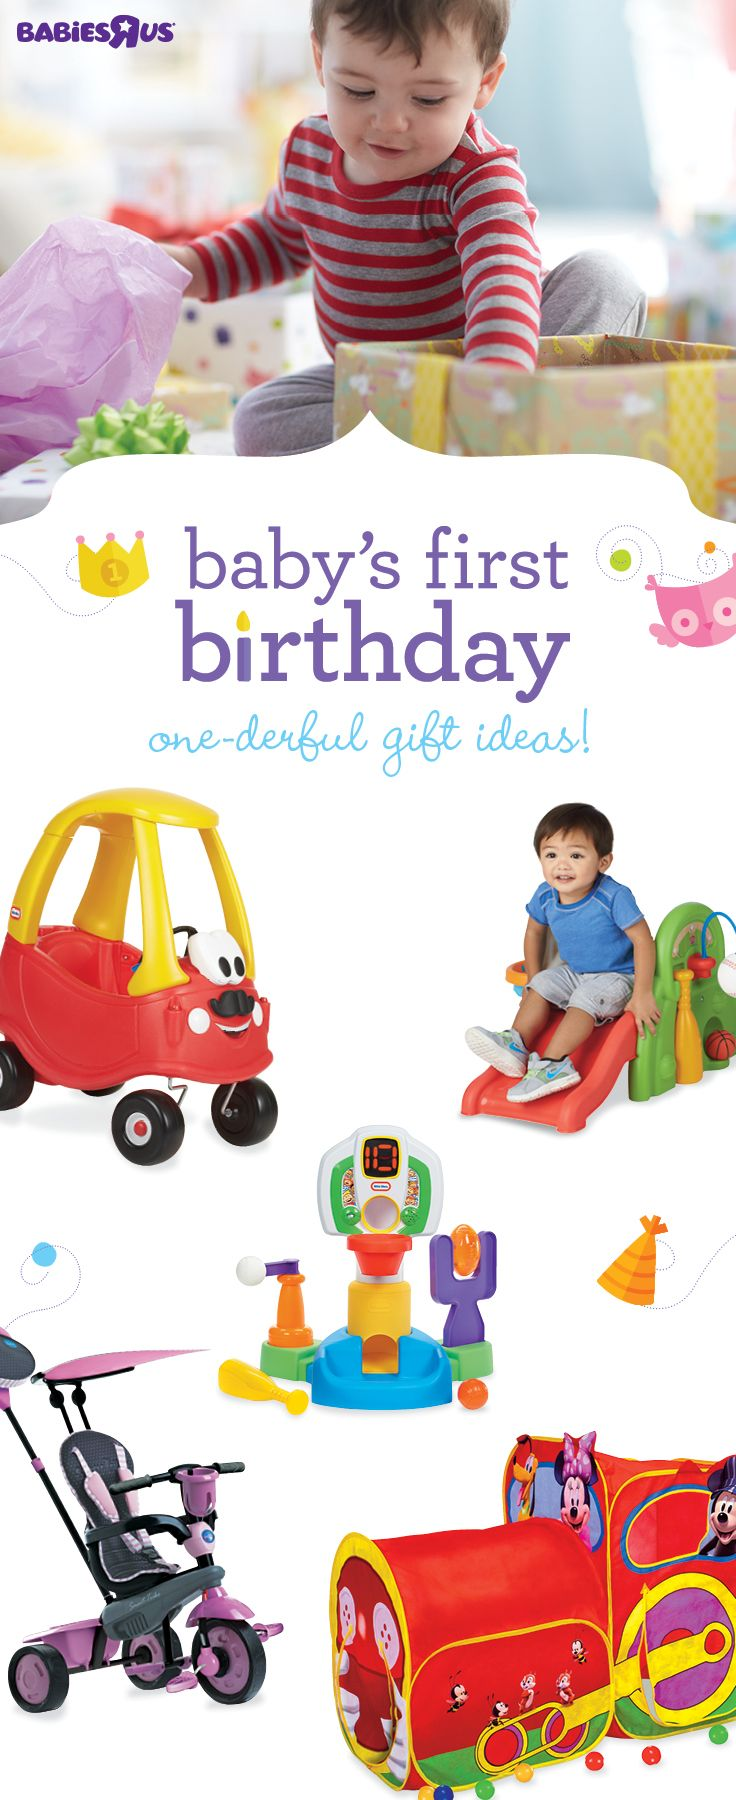 Babys Turning One Soon Weve Got Some Great First Birthday Gift Ideas For